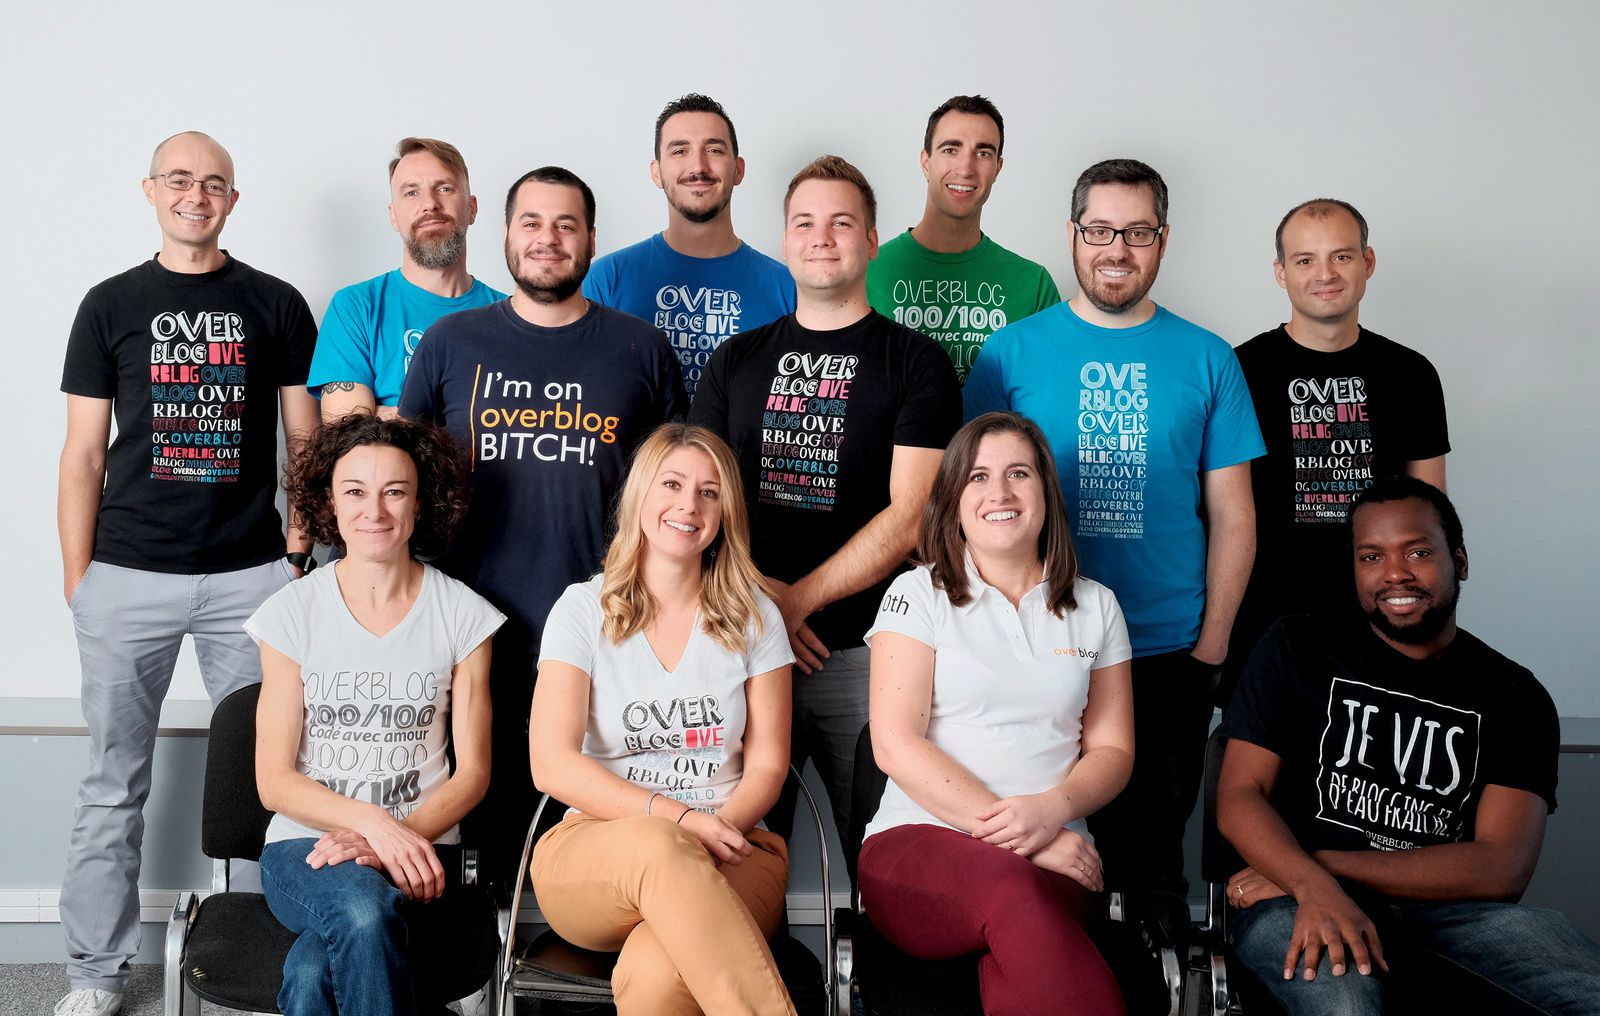 The Overblog's Team !